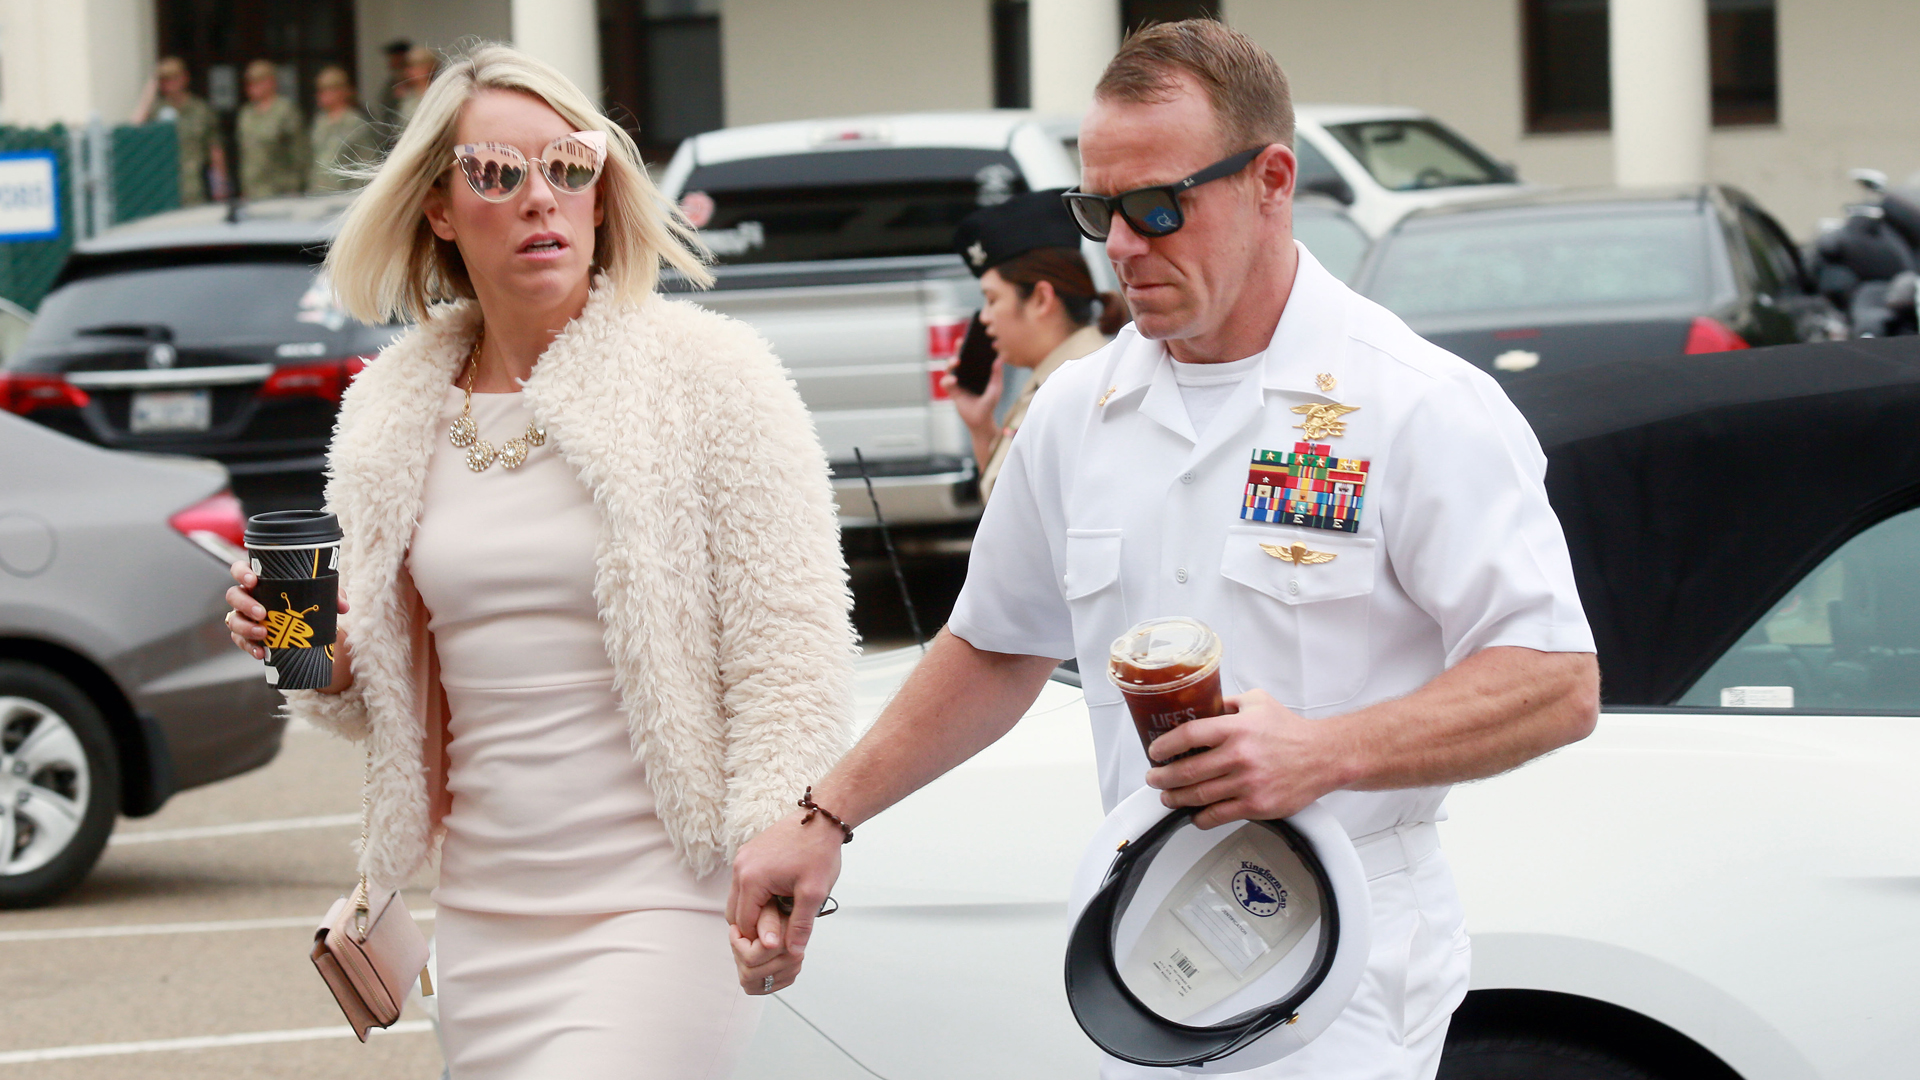 Navy Special Operations Chief Edward Gallagher walks into military court with his wife Andrea Gallagher June 24, 2019, in San Diego, California. (Credit: Sandy Huffaker/Getty Images)